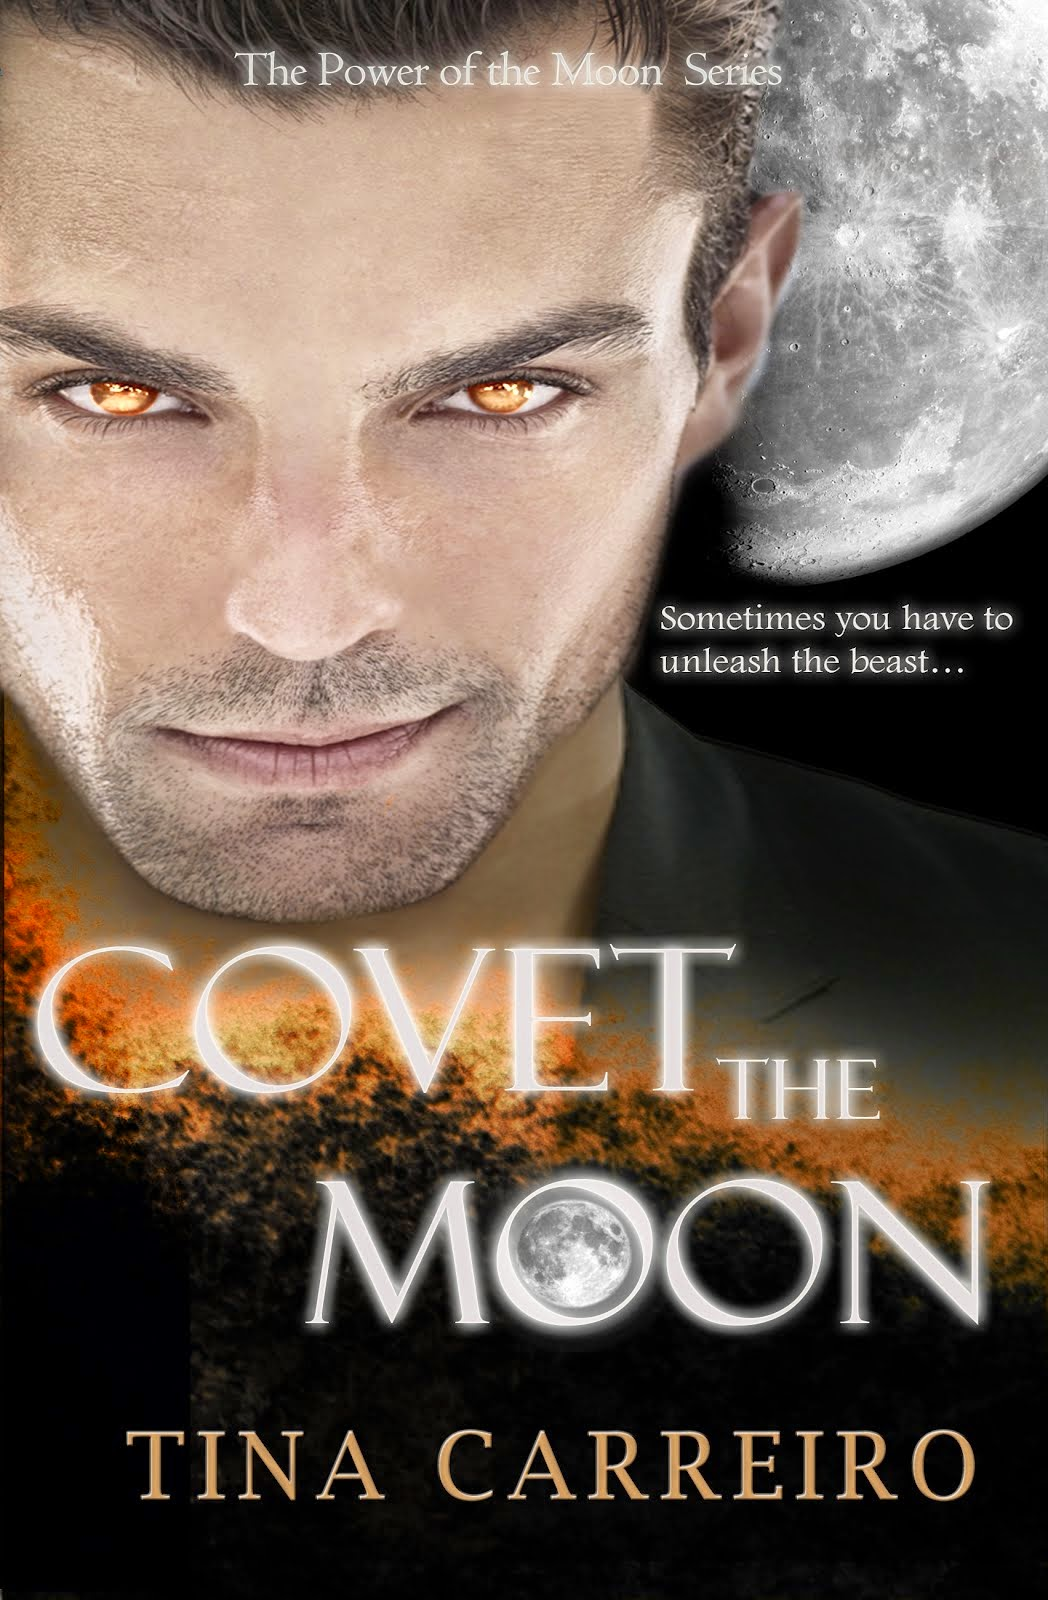 Covet the Moon